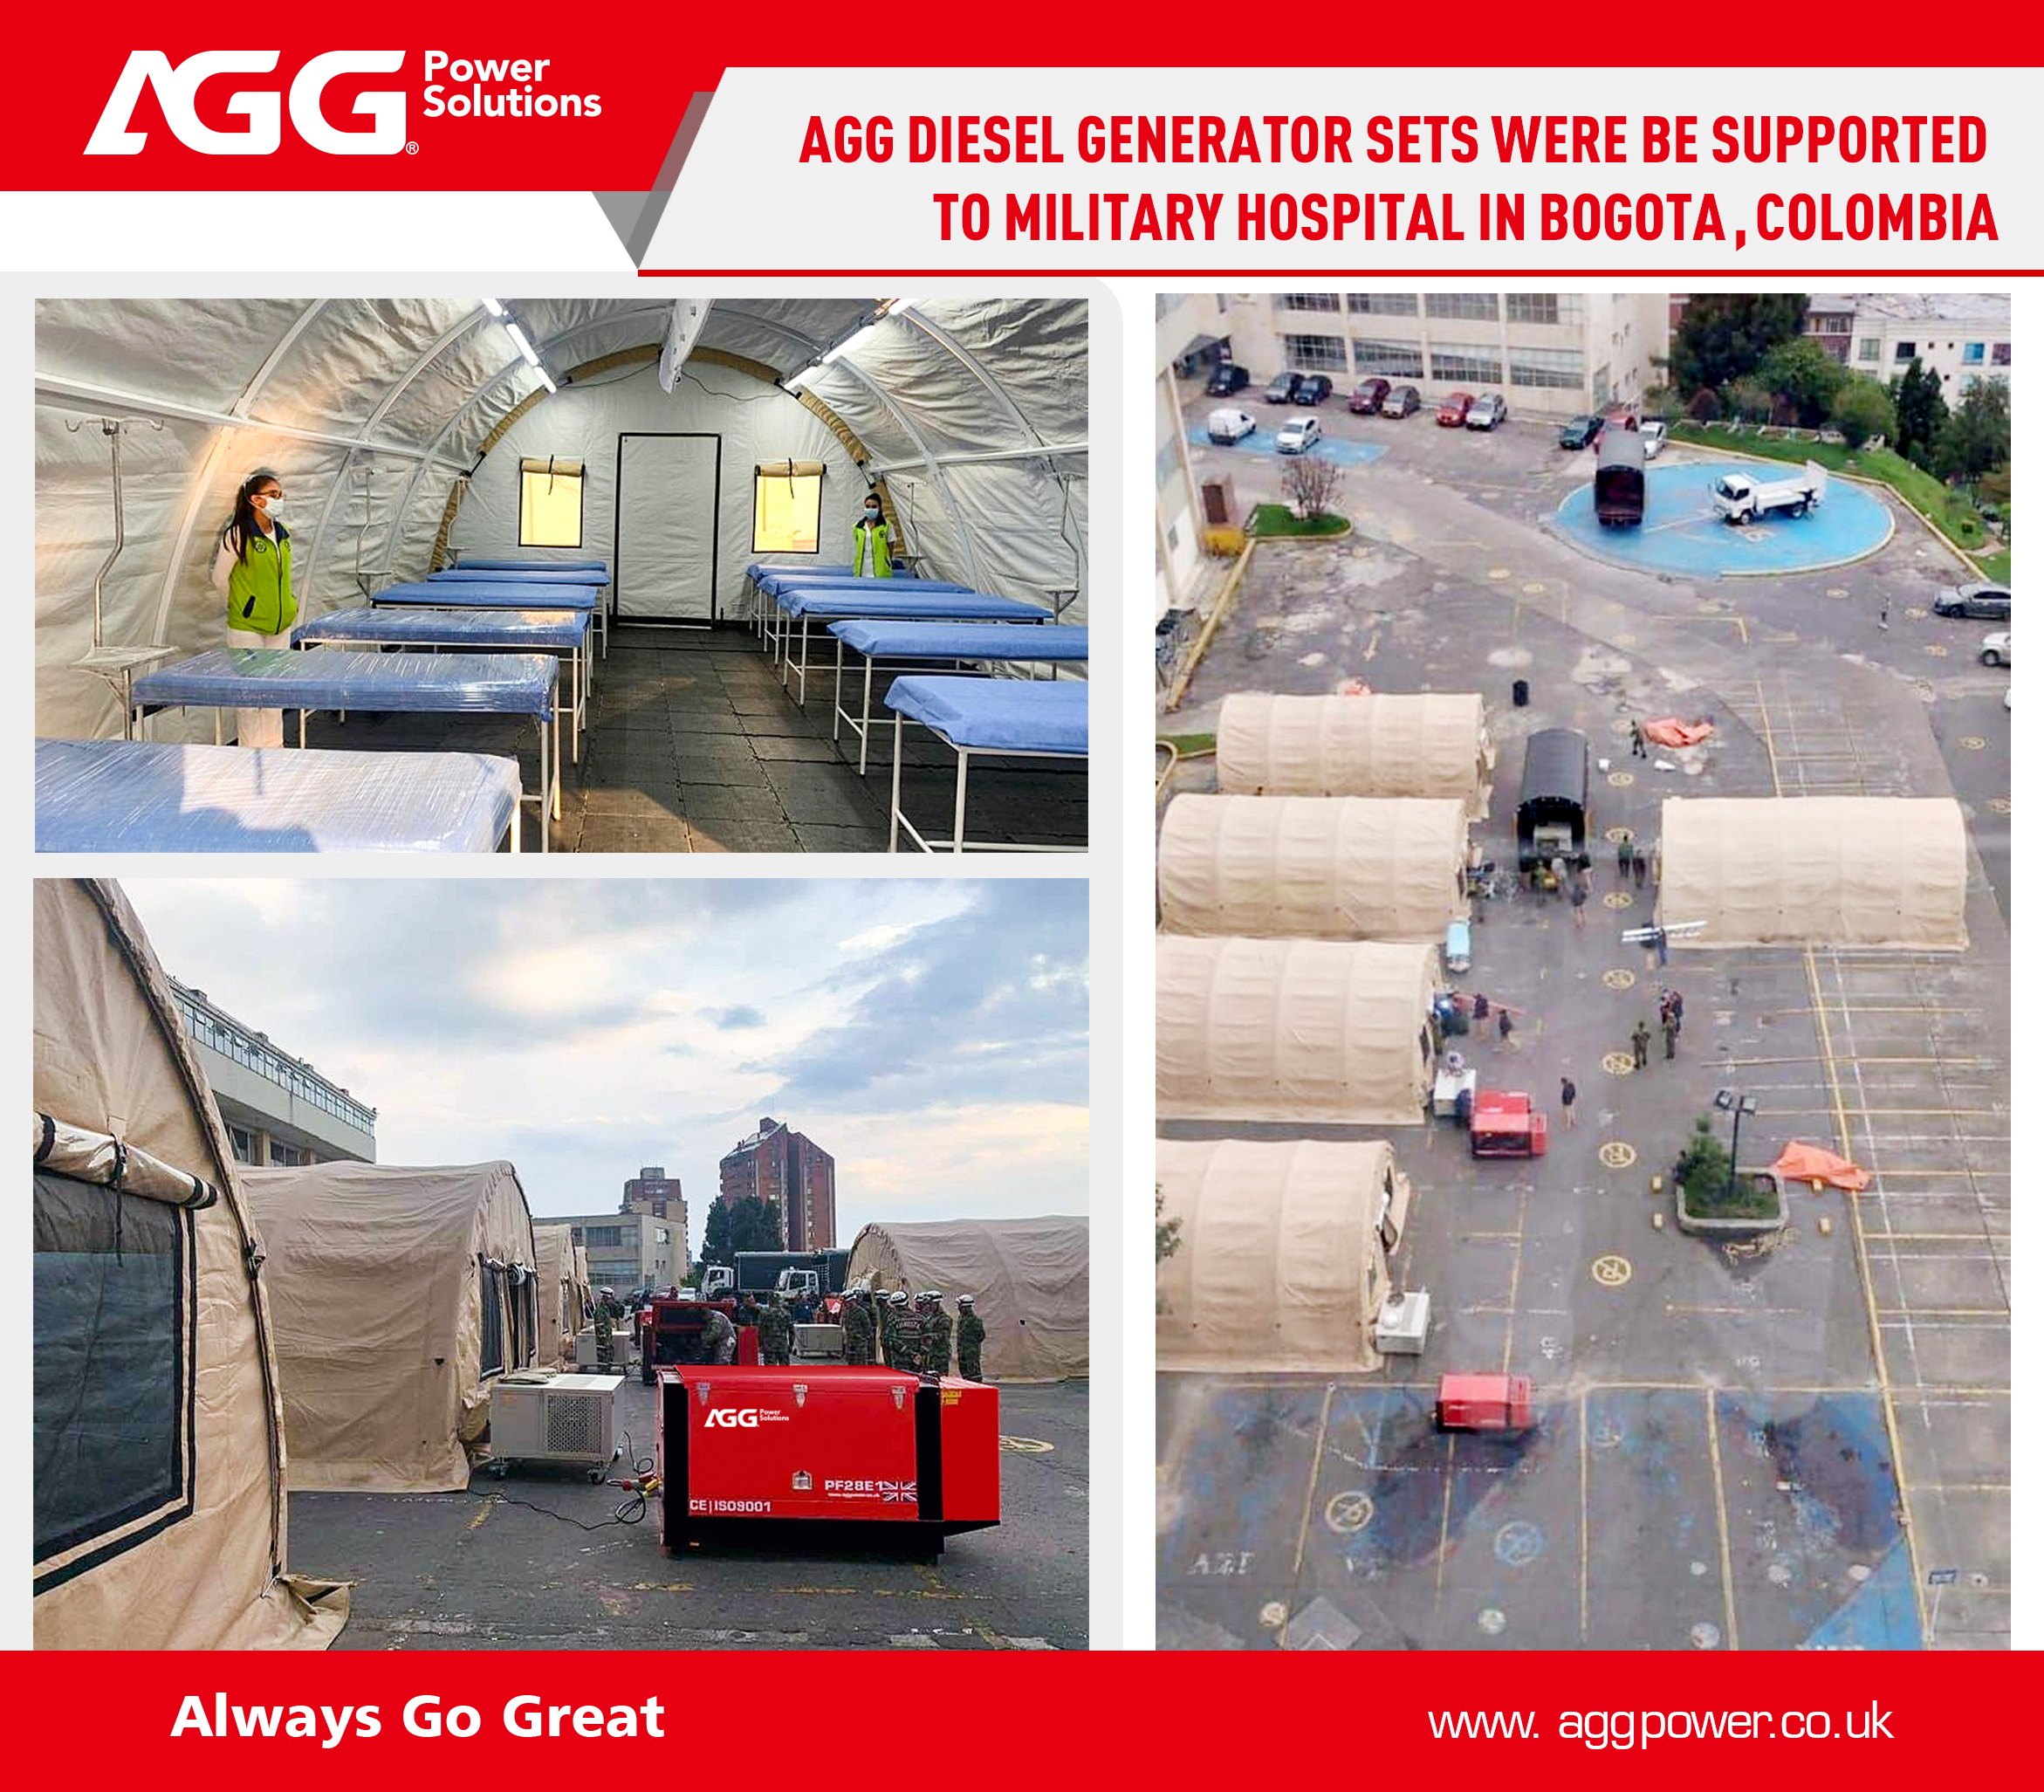 AGG Diesel Generator sets were be supported to Military Hospital in Bogota, Colombia